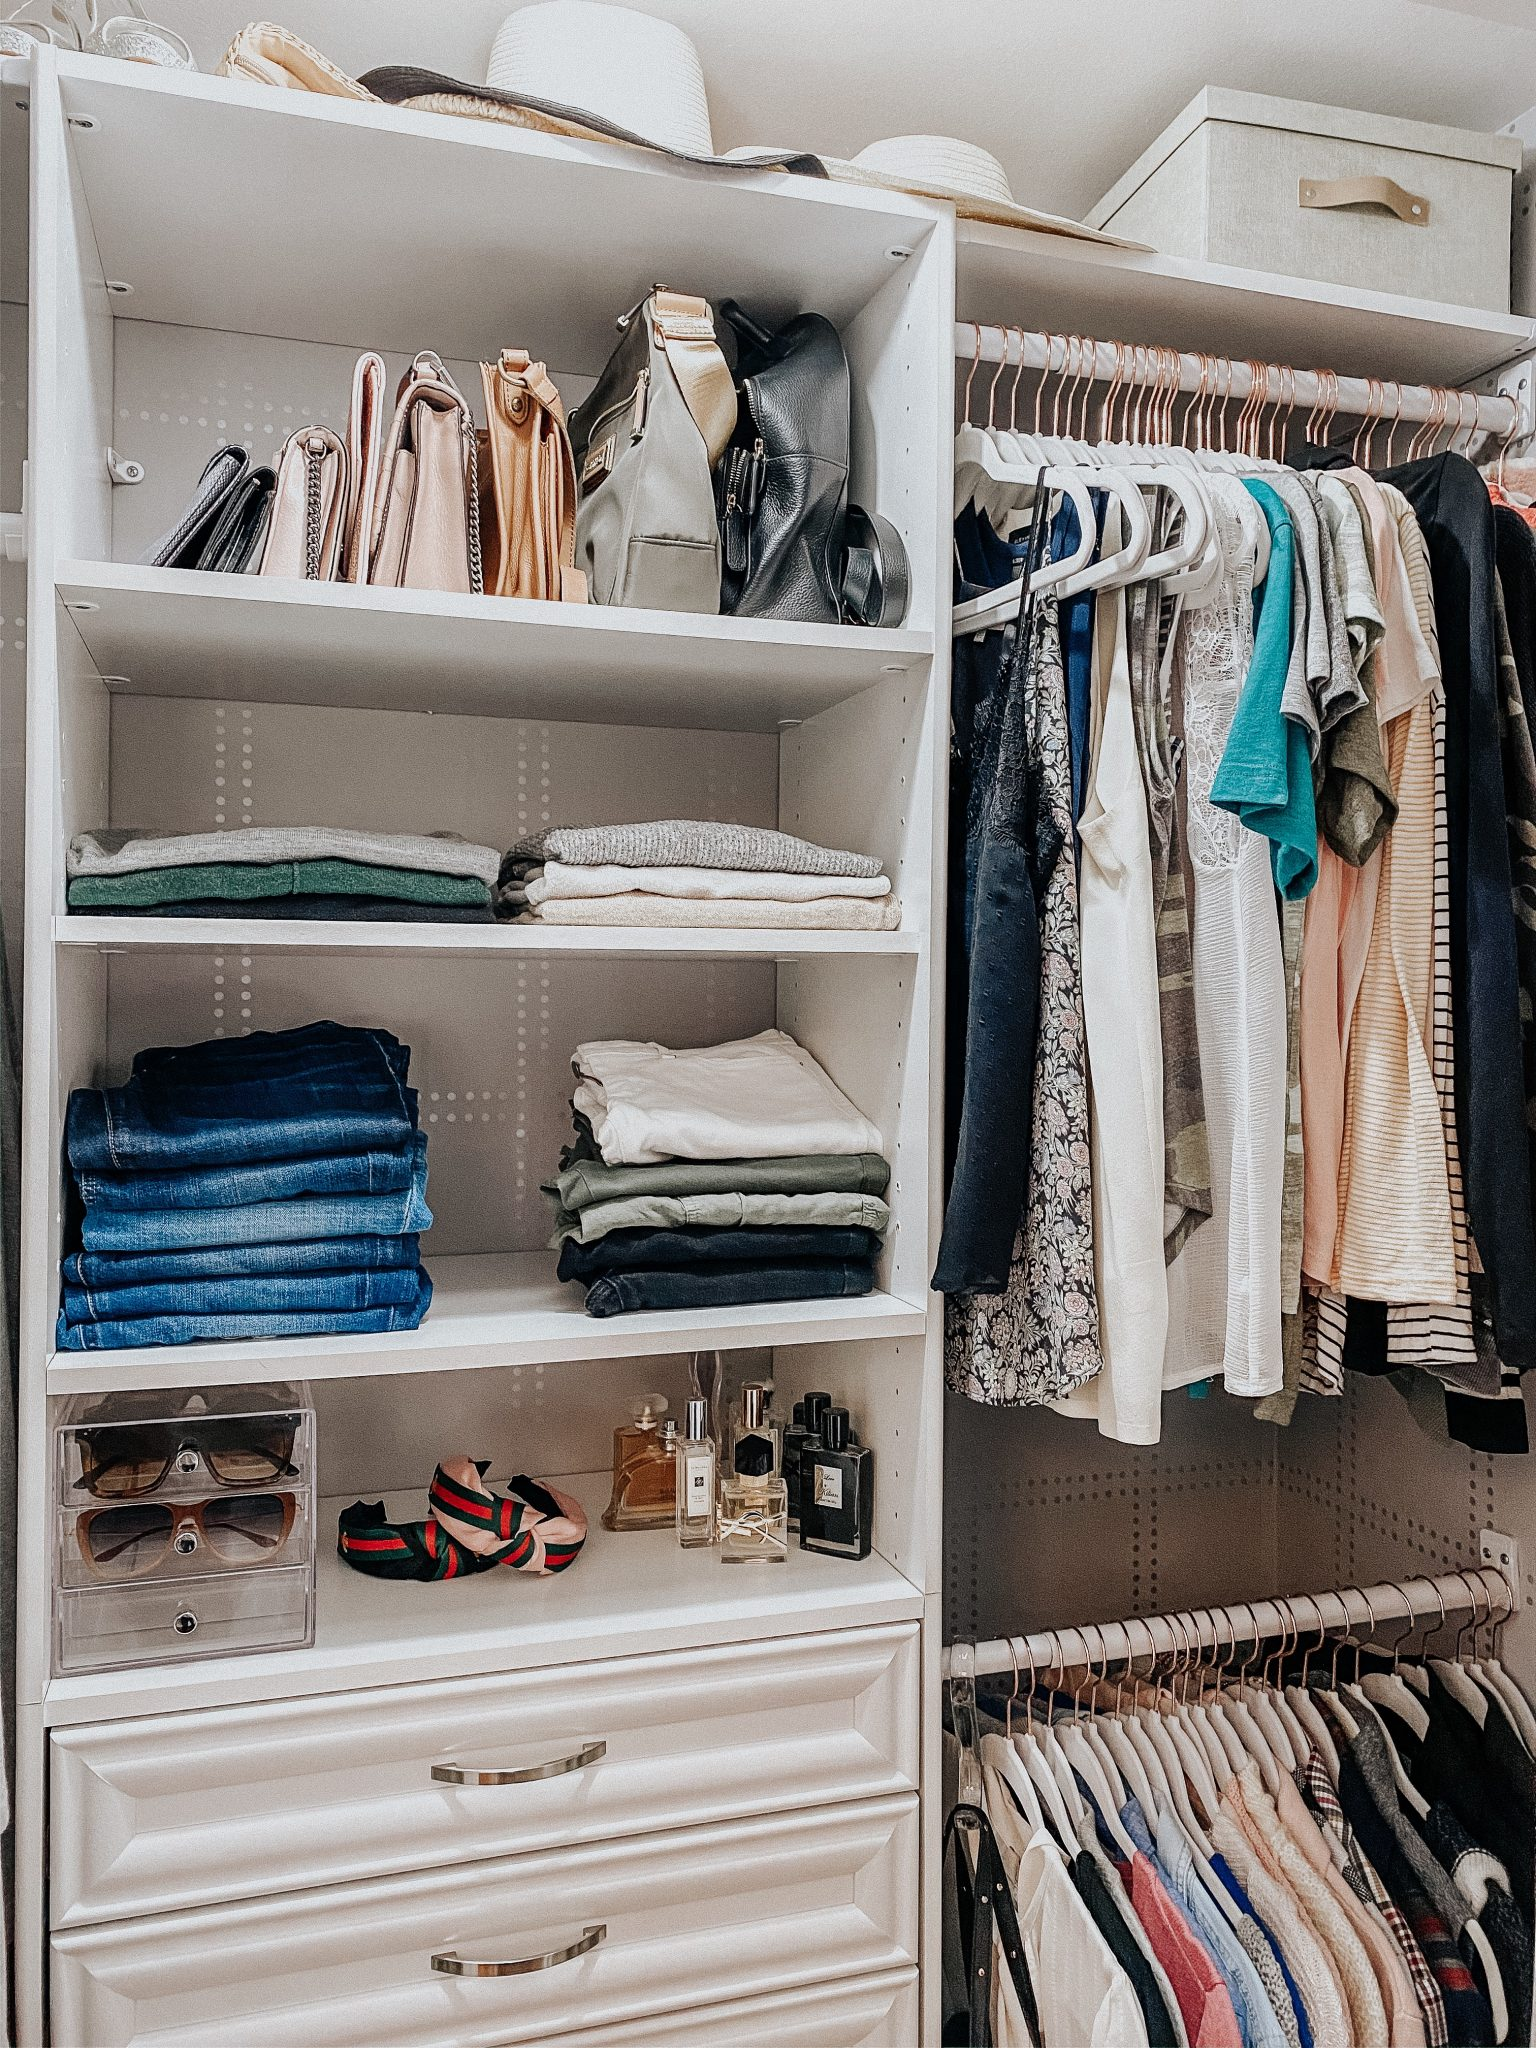 DIY Closet Makeover | Daily Splendor Life and Style Blog | finished closet #closetorganizer #smallcloset #smallspaces #organizedcloset #semicustomcloset #budgetcloset #diycloset #diyhomeproject #thehomedepot #homedepot #thecontainerstore #closetmaid #wallpaper